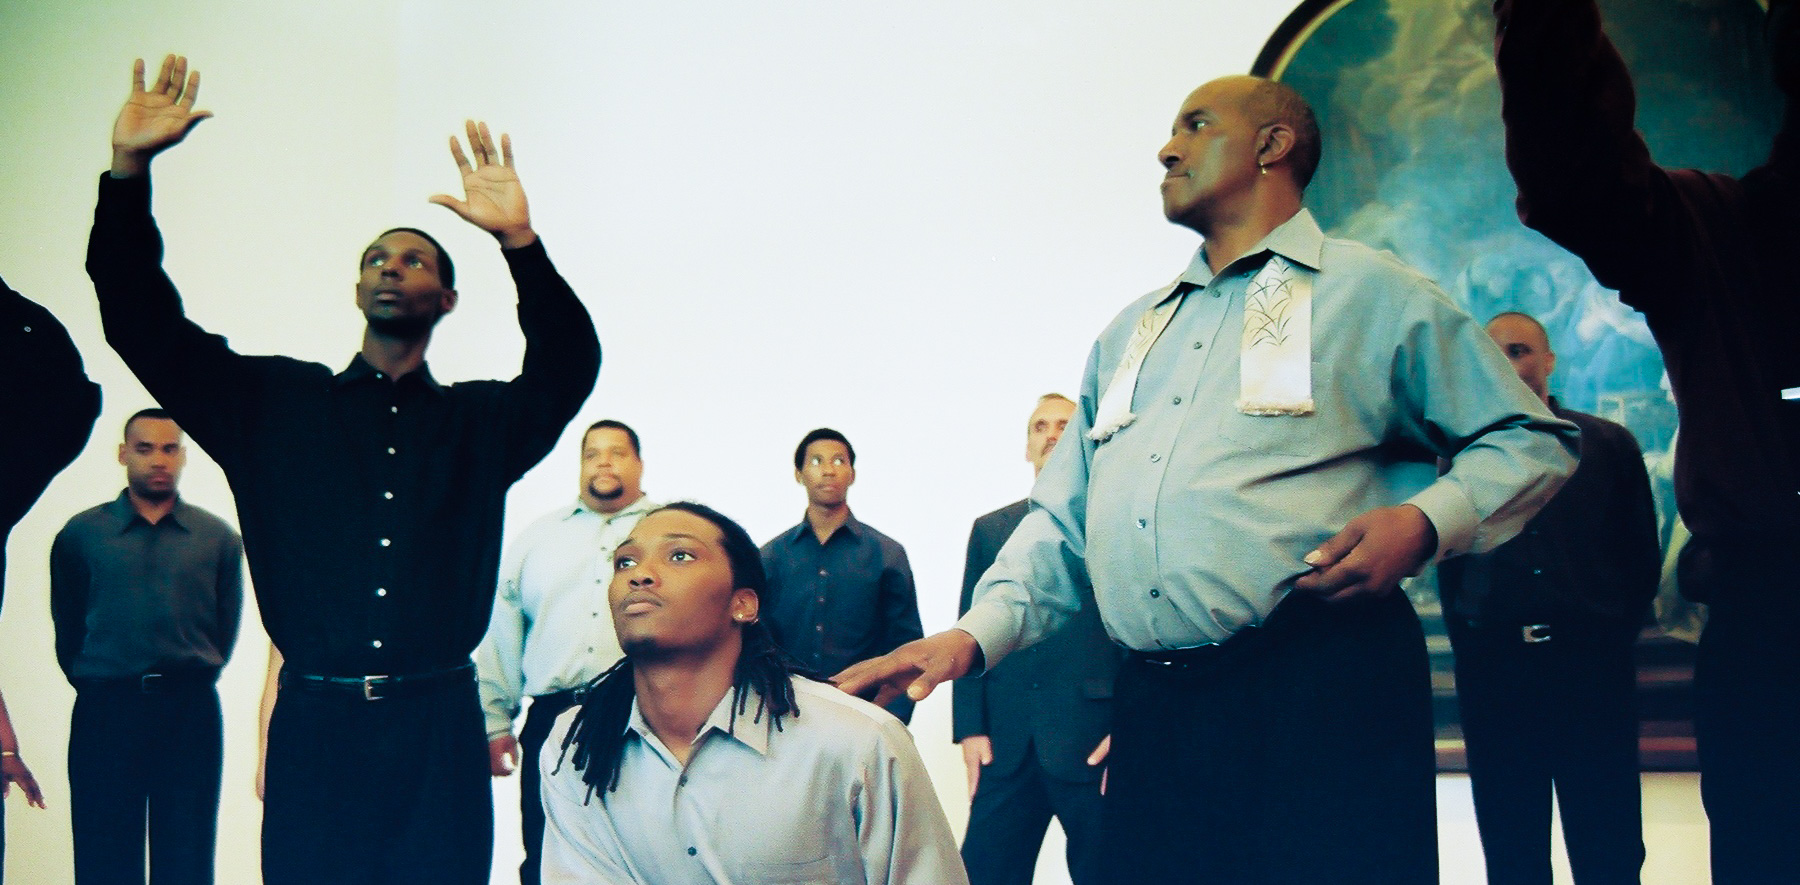 Participants pose and perform for an audience. One kneels, another rests their fingers on the kneeler's shoulder, and others raise their hands with their palms foreword.